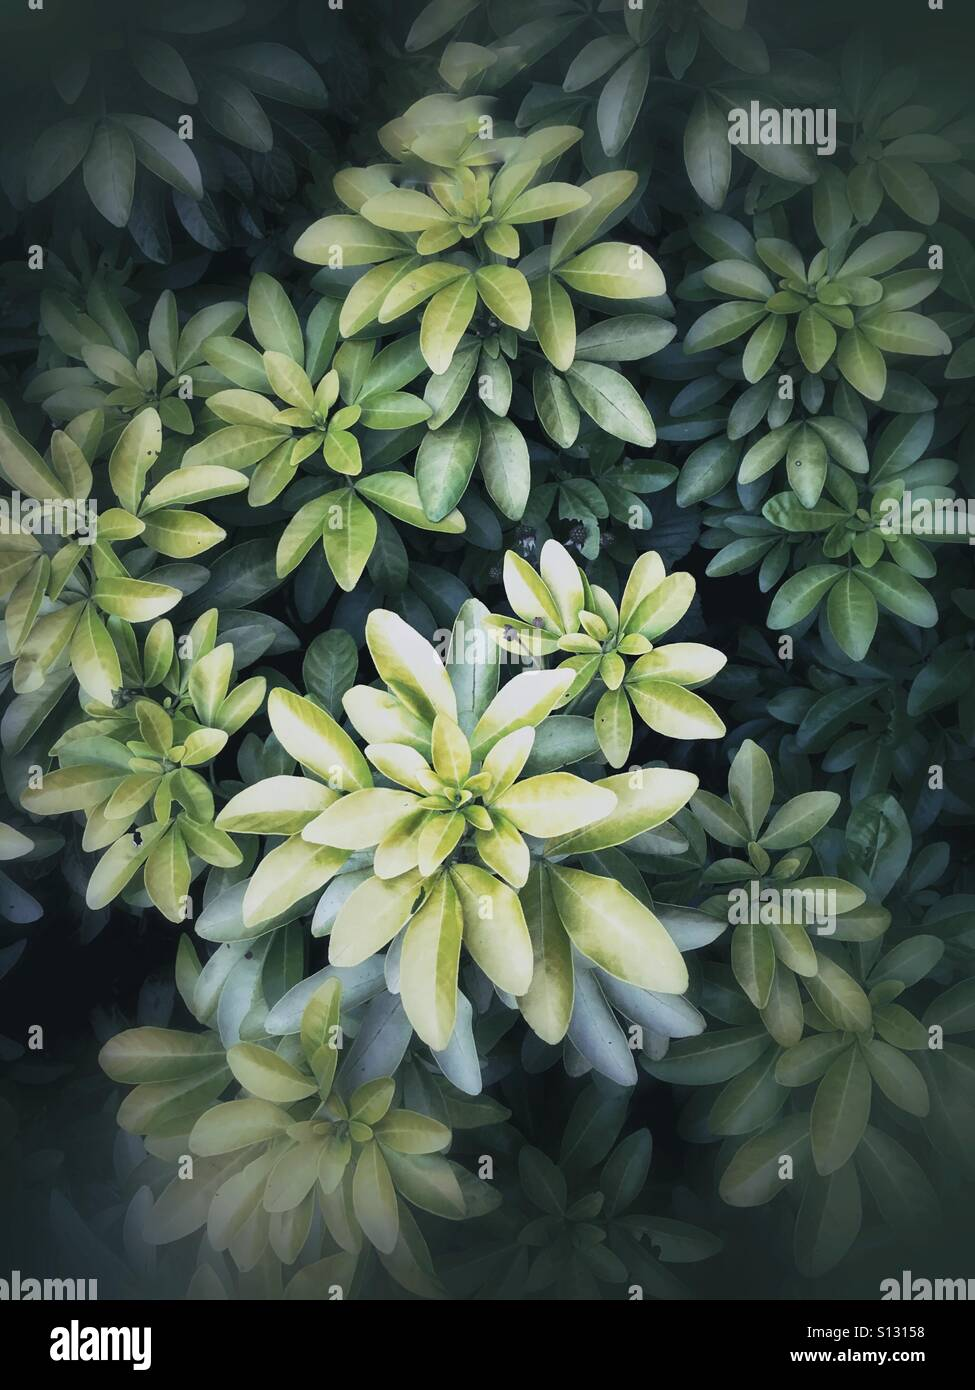 Summer foliage strong vignette and muted tones - Stock Image